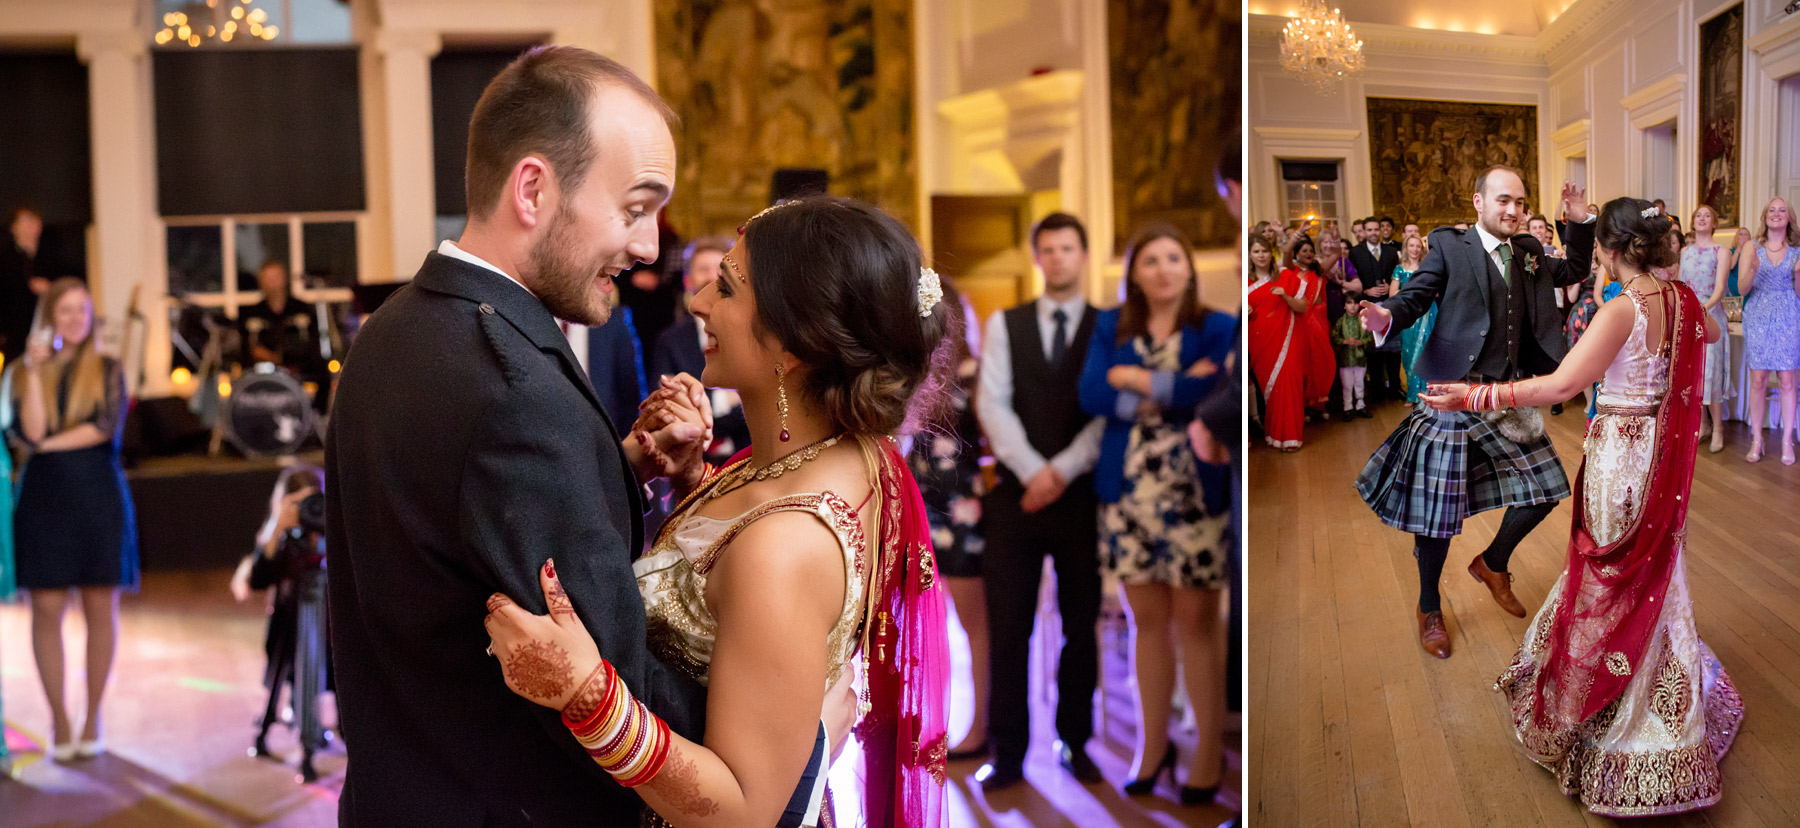 First Dance at Hopetoun House Scotland